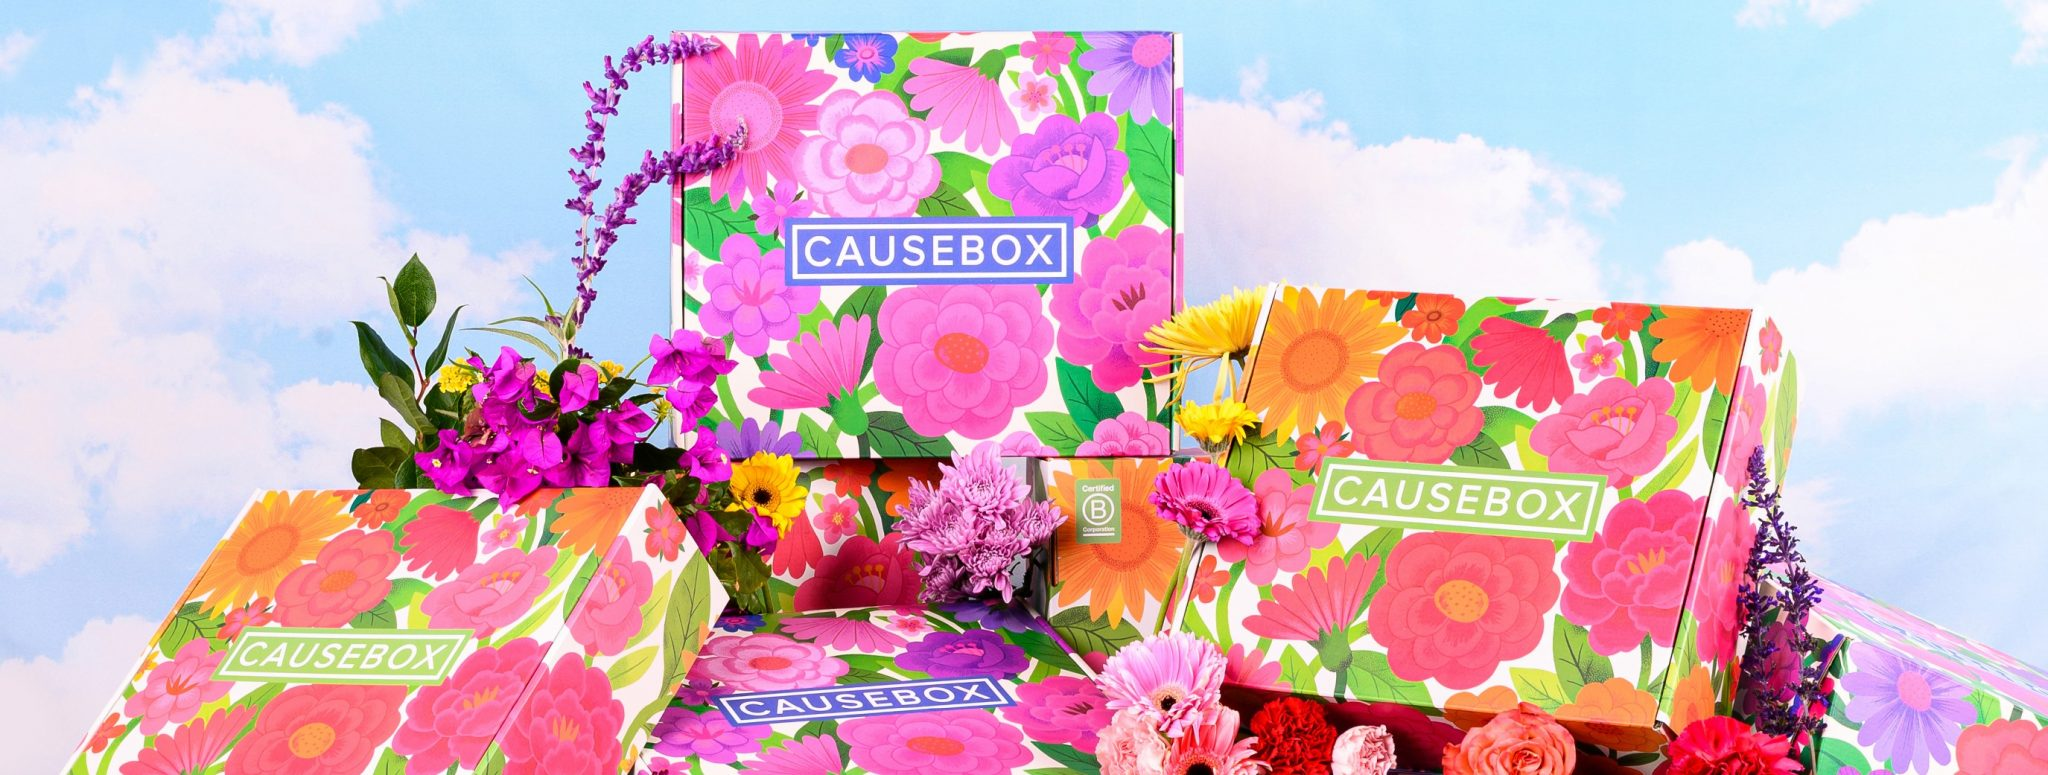 CAUSEBOX Spring 2021 Welcome Box FULL Spoilers + Free Bundle Offer